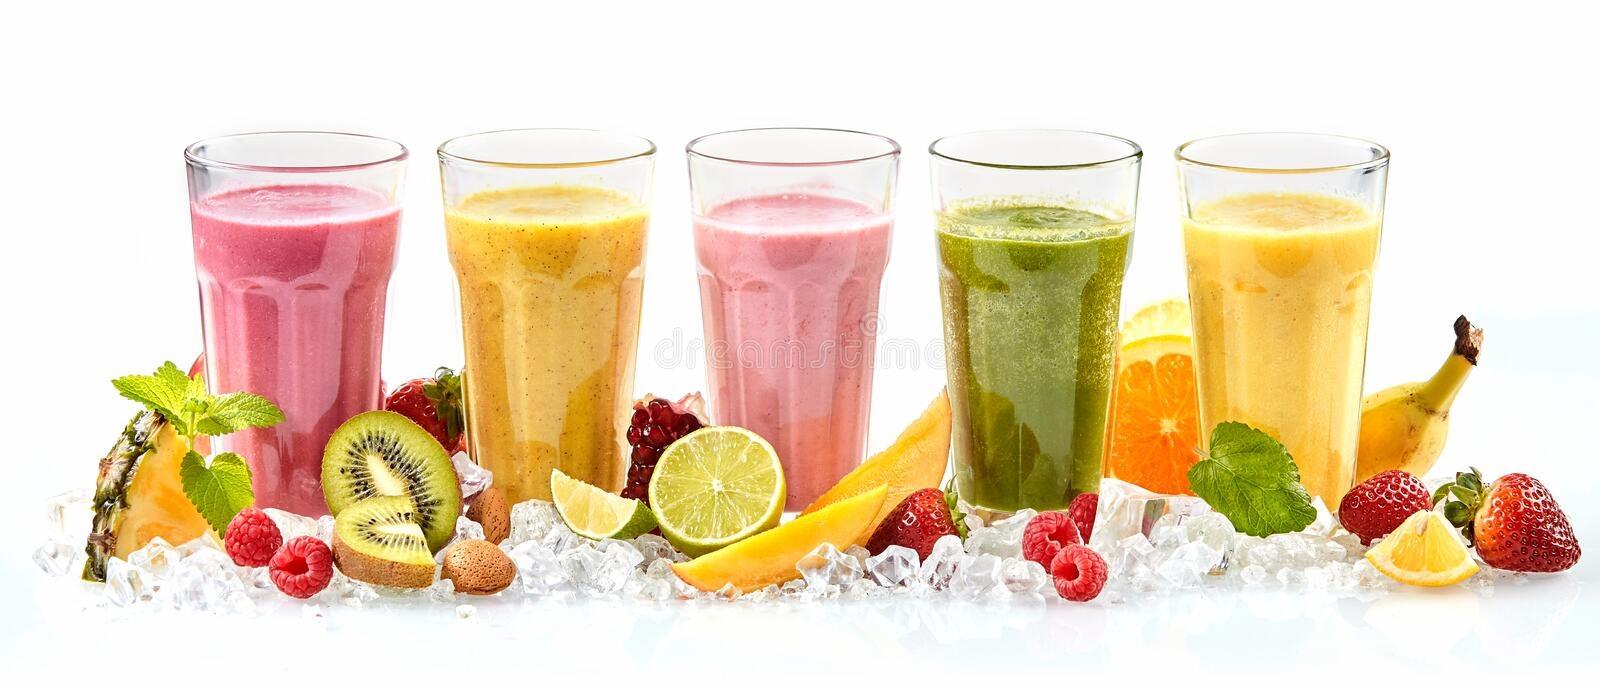 Long row of tropical fruit drinks in tall glasses royalty free stock photos